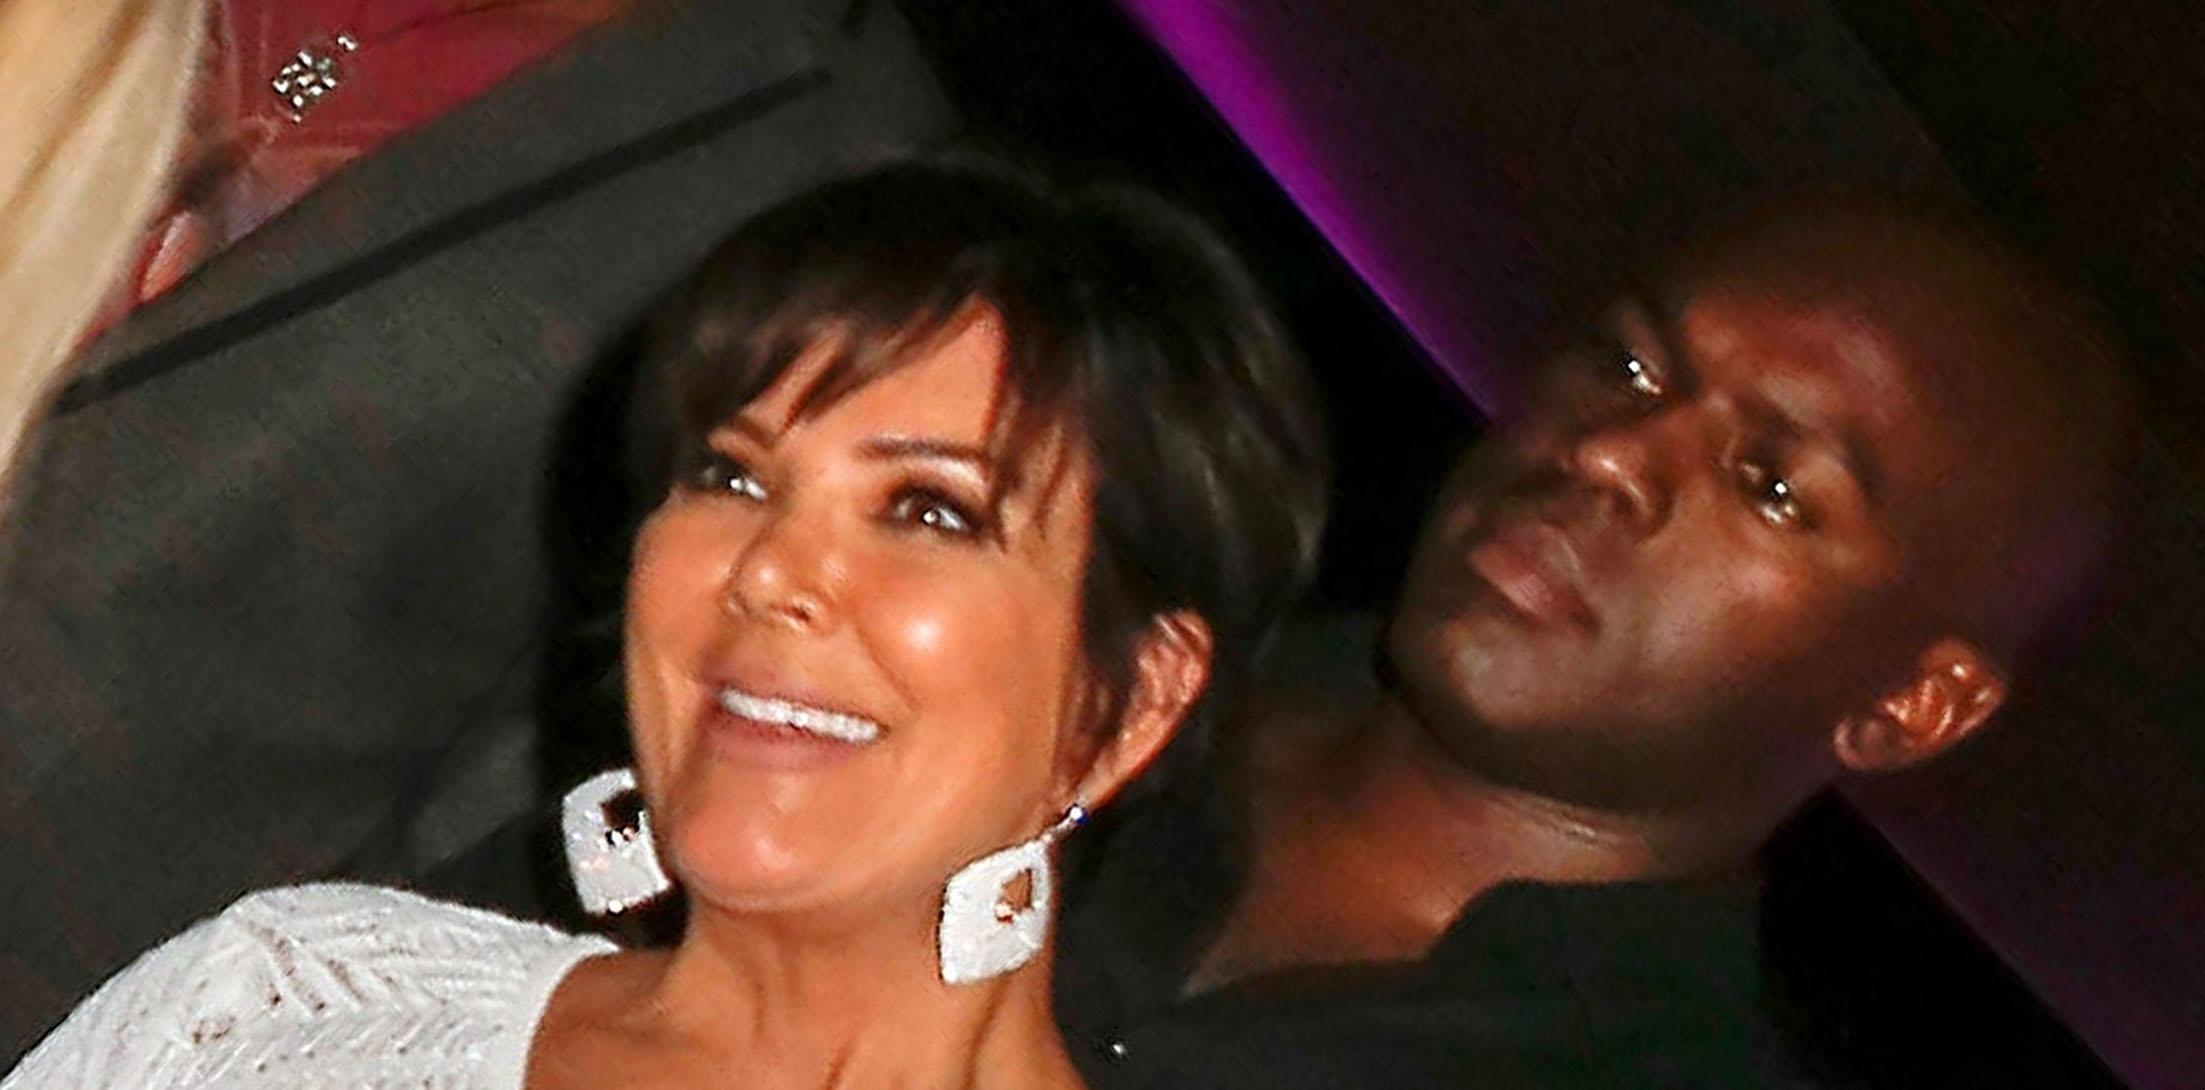 *EXCLUSIVE* Kris Jenner and Corey Gamble have a dinner date at Opera restaurant in Saint Tropez